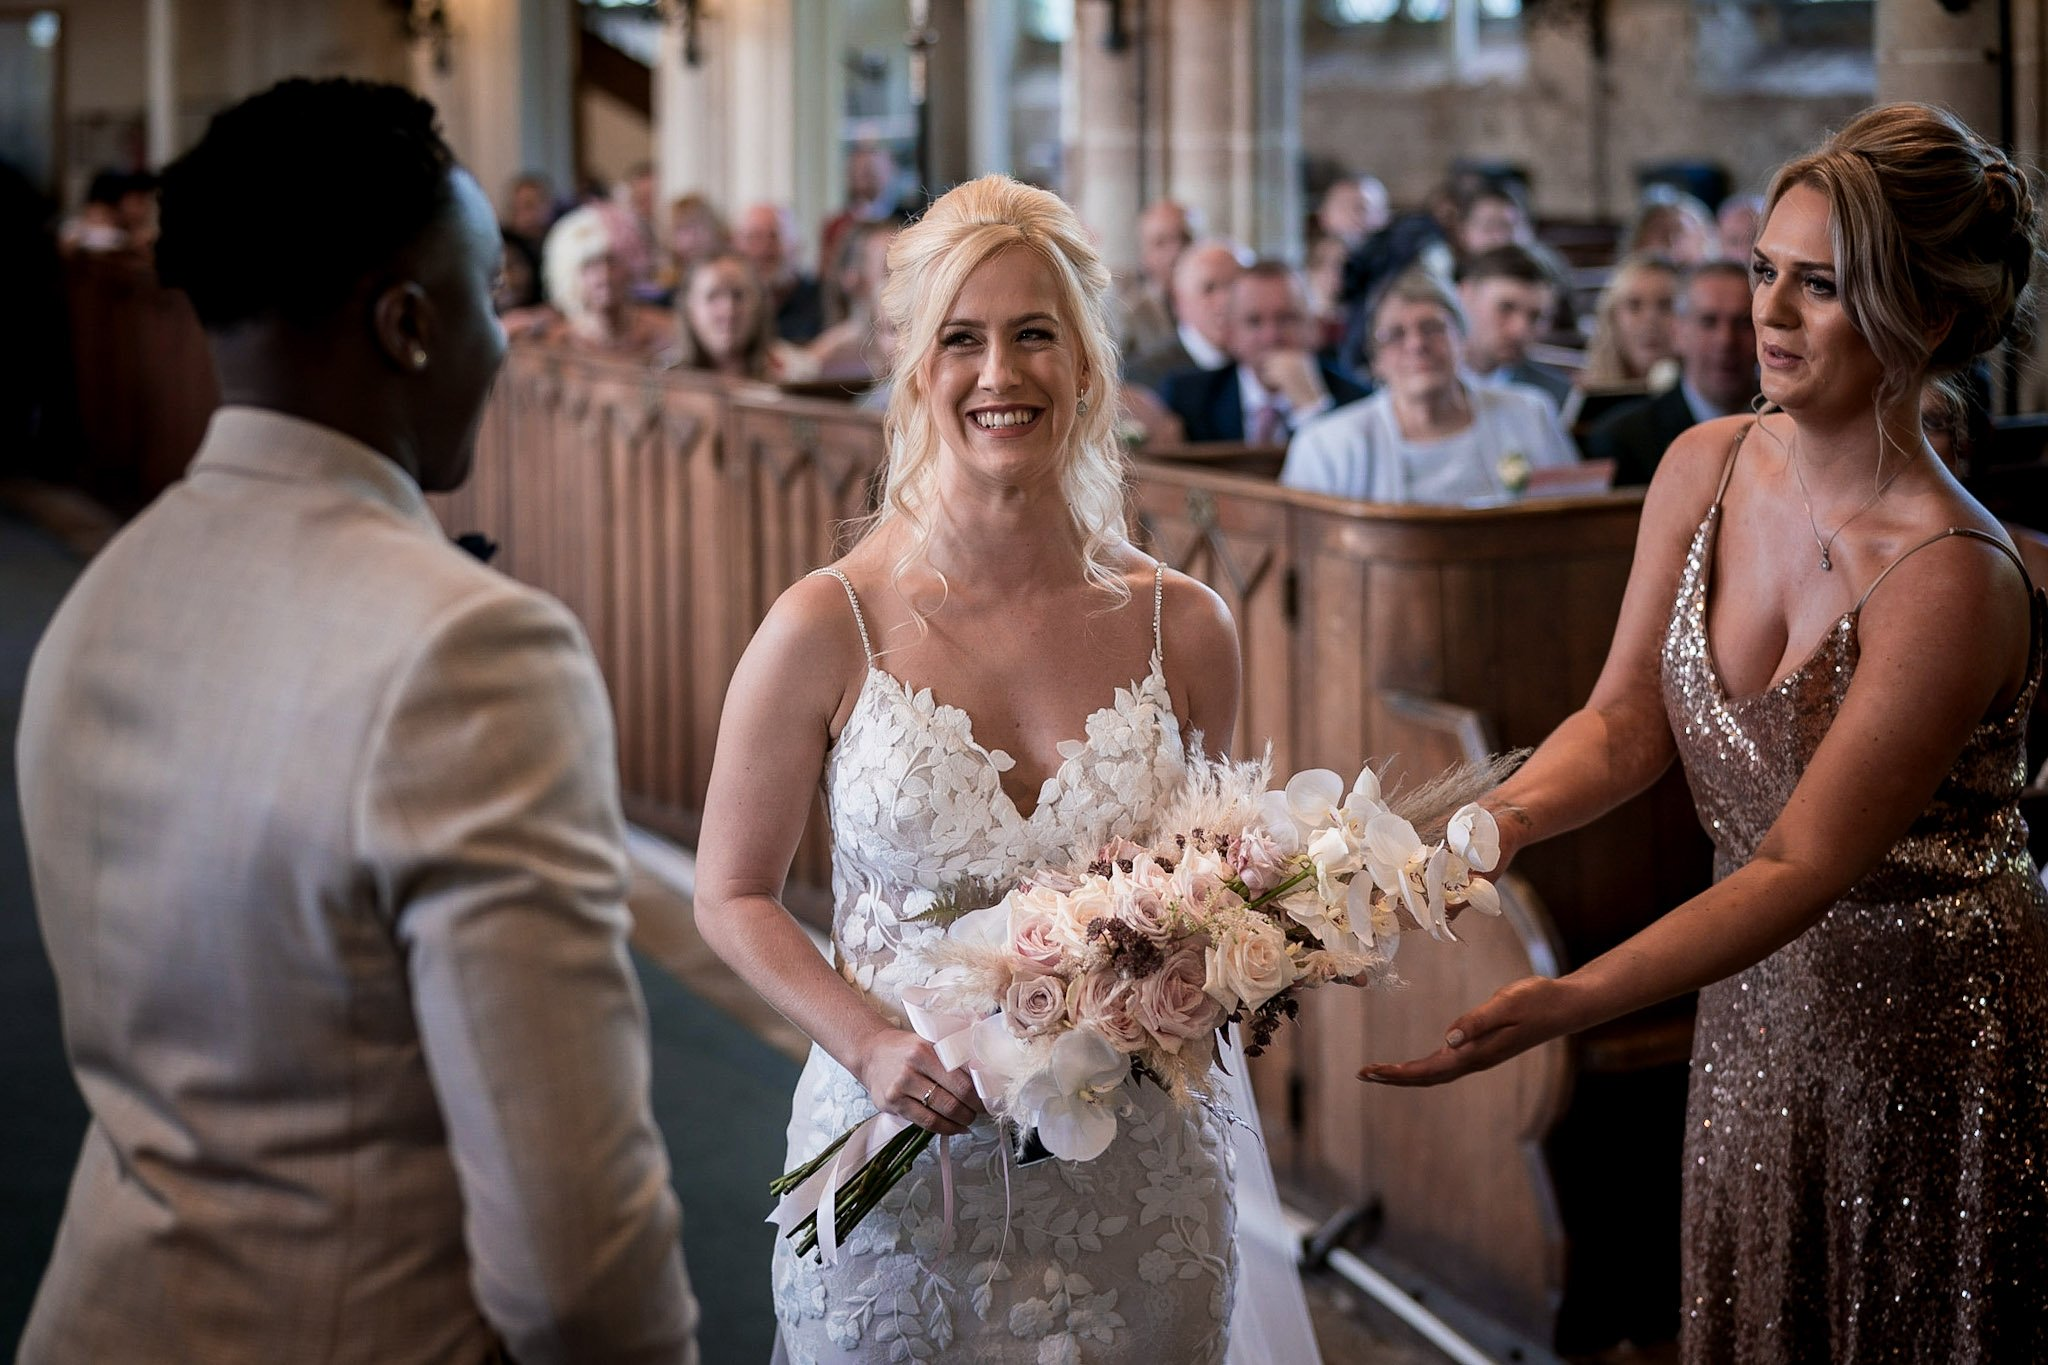 Your Favourite Frame YFFUK Mwasuku St Michaels Church Appleby Magna bride reaching the front of the aisle and beaming at her husband to be maid of honour trying to steal the bouquet